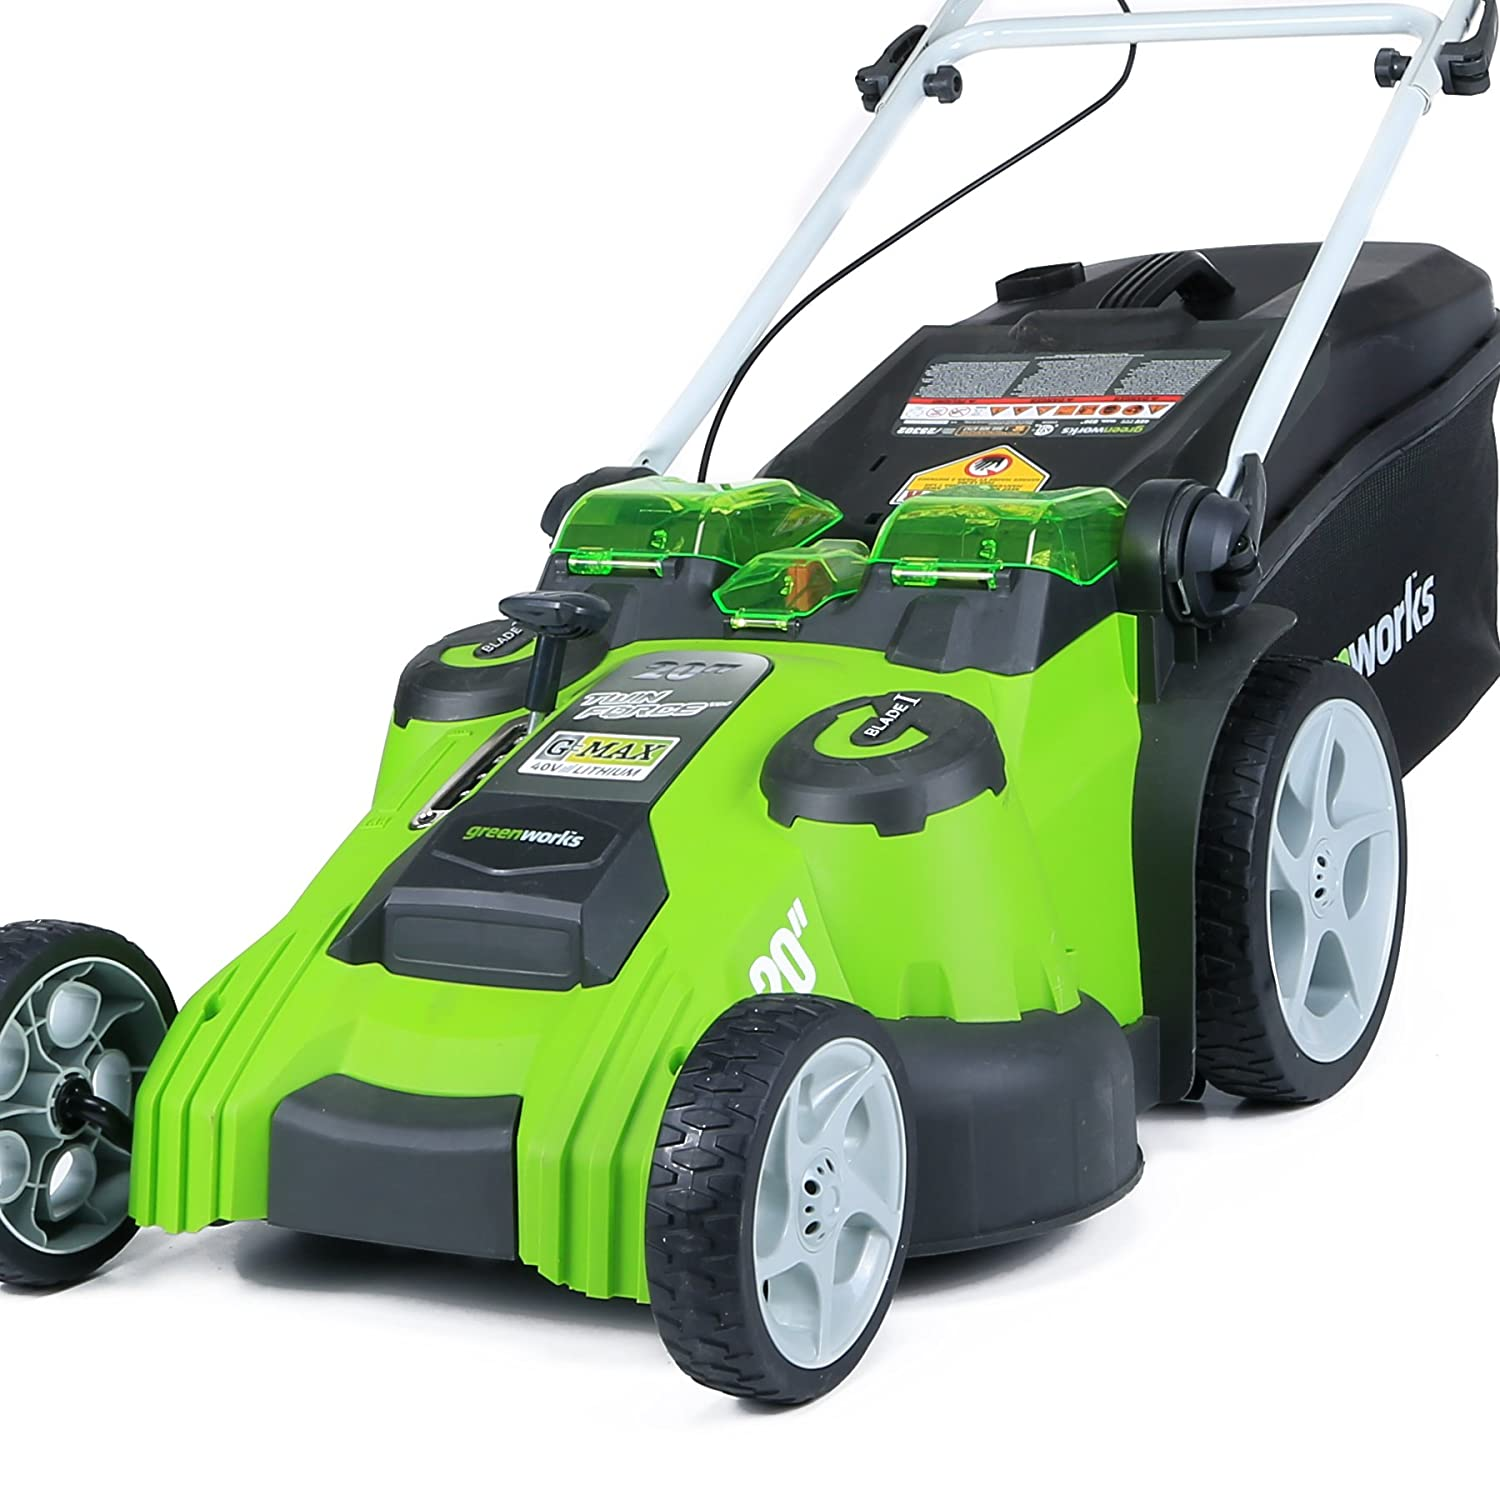 best lawn mowers Best Lawn Mowers (Review And Compare Prices 2018) 813AHmdArtL